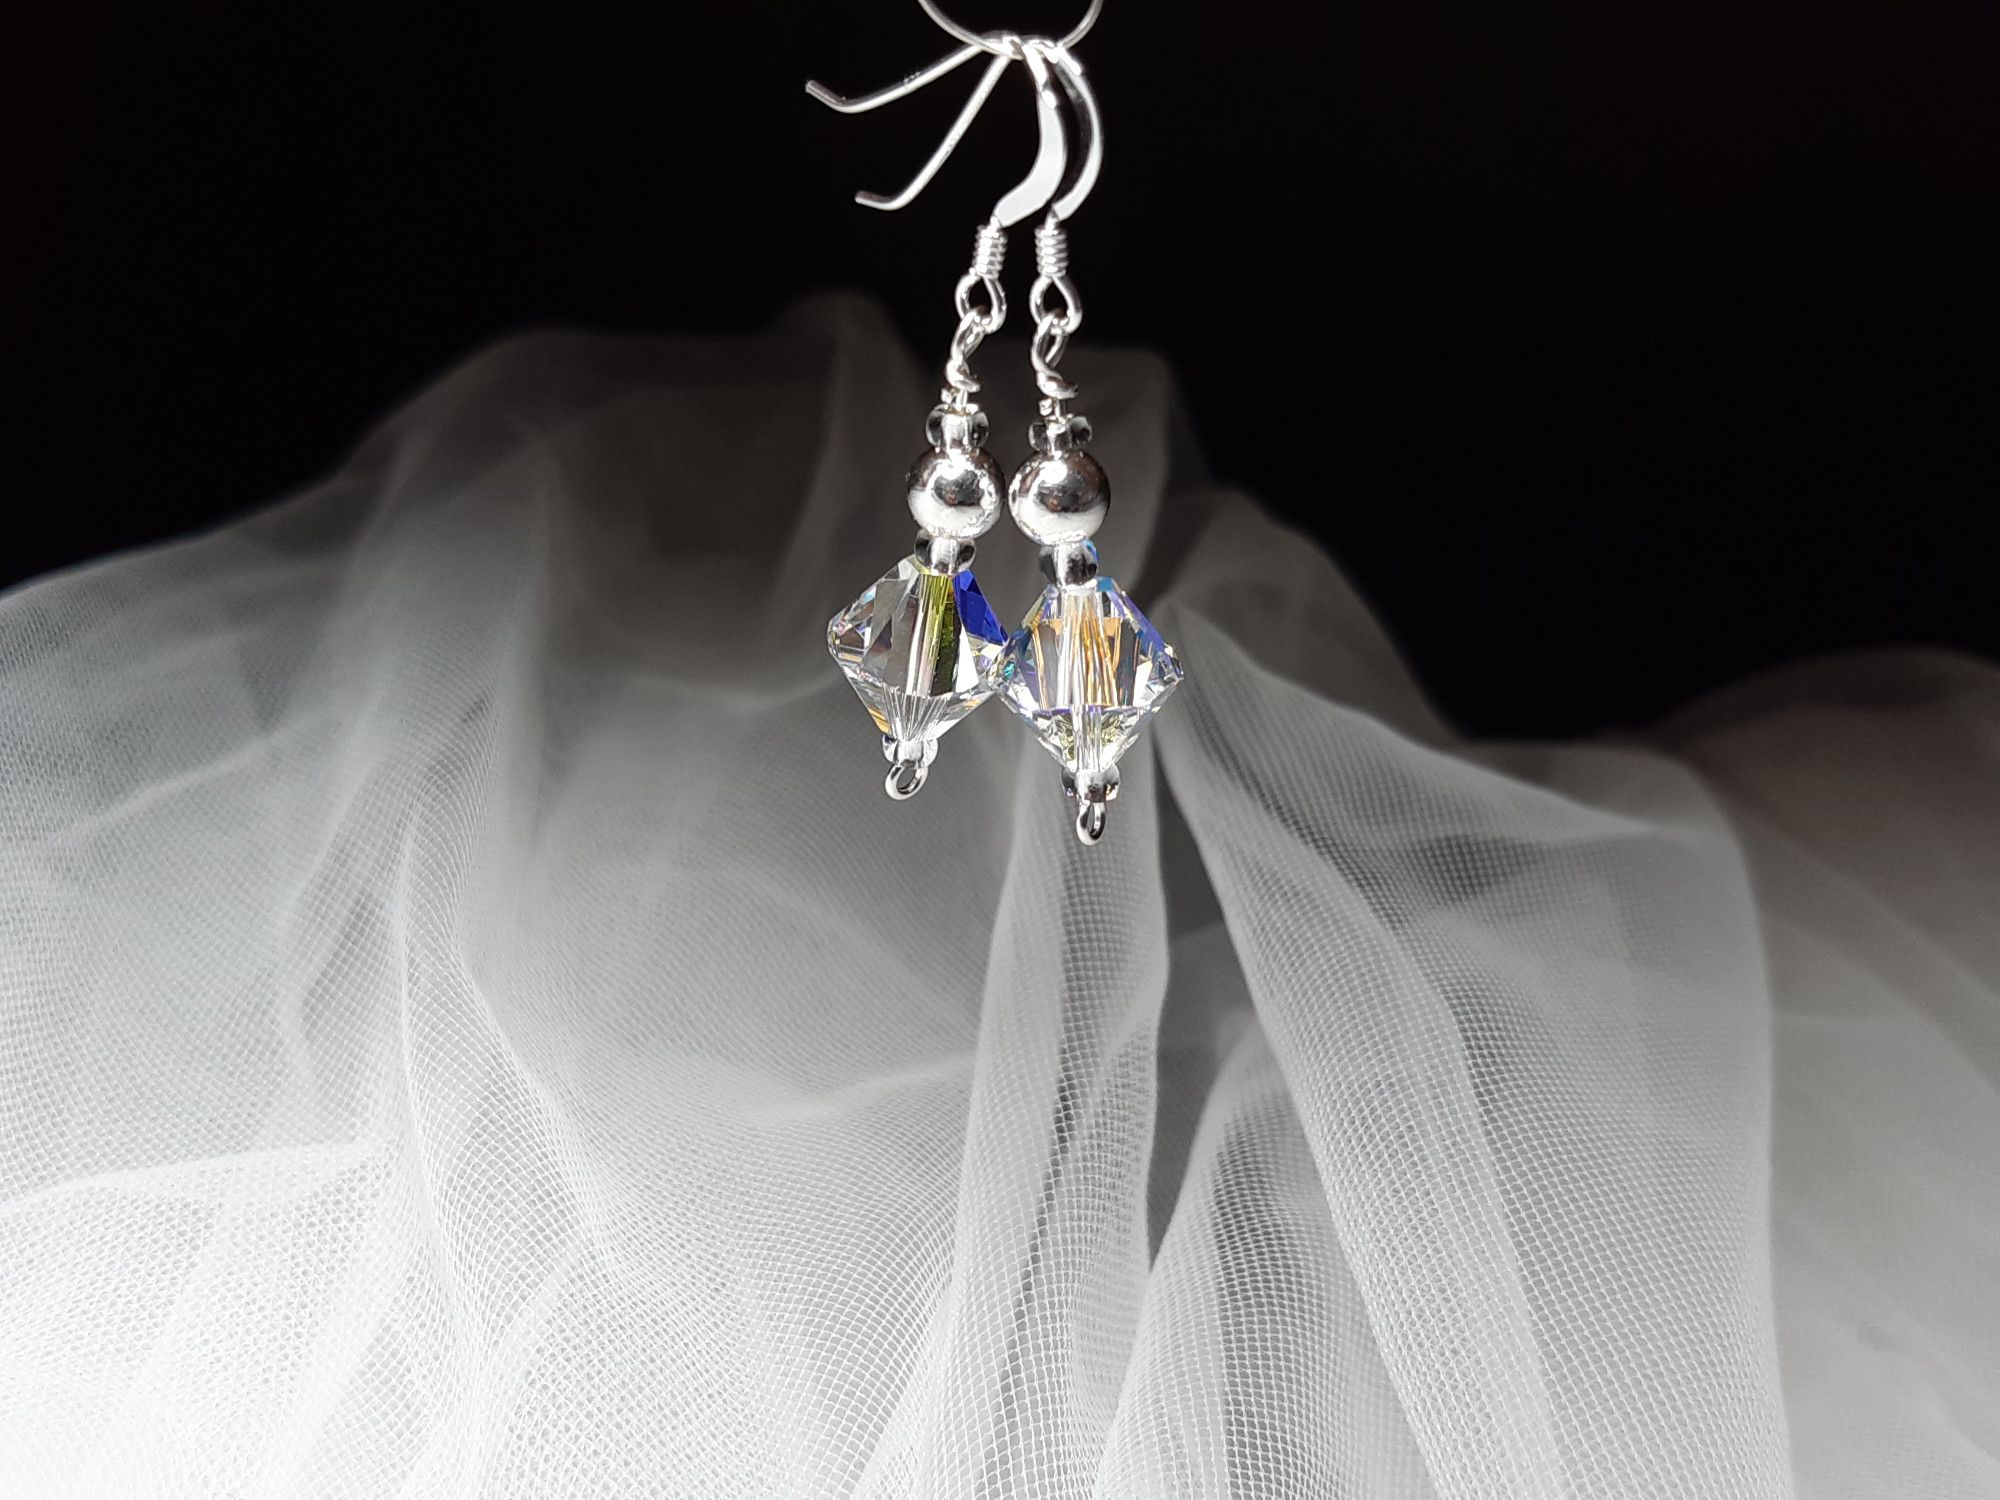 Occasion-bridal-wedding-swarovski crystal+sterling silver earrings-1.jpg